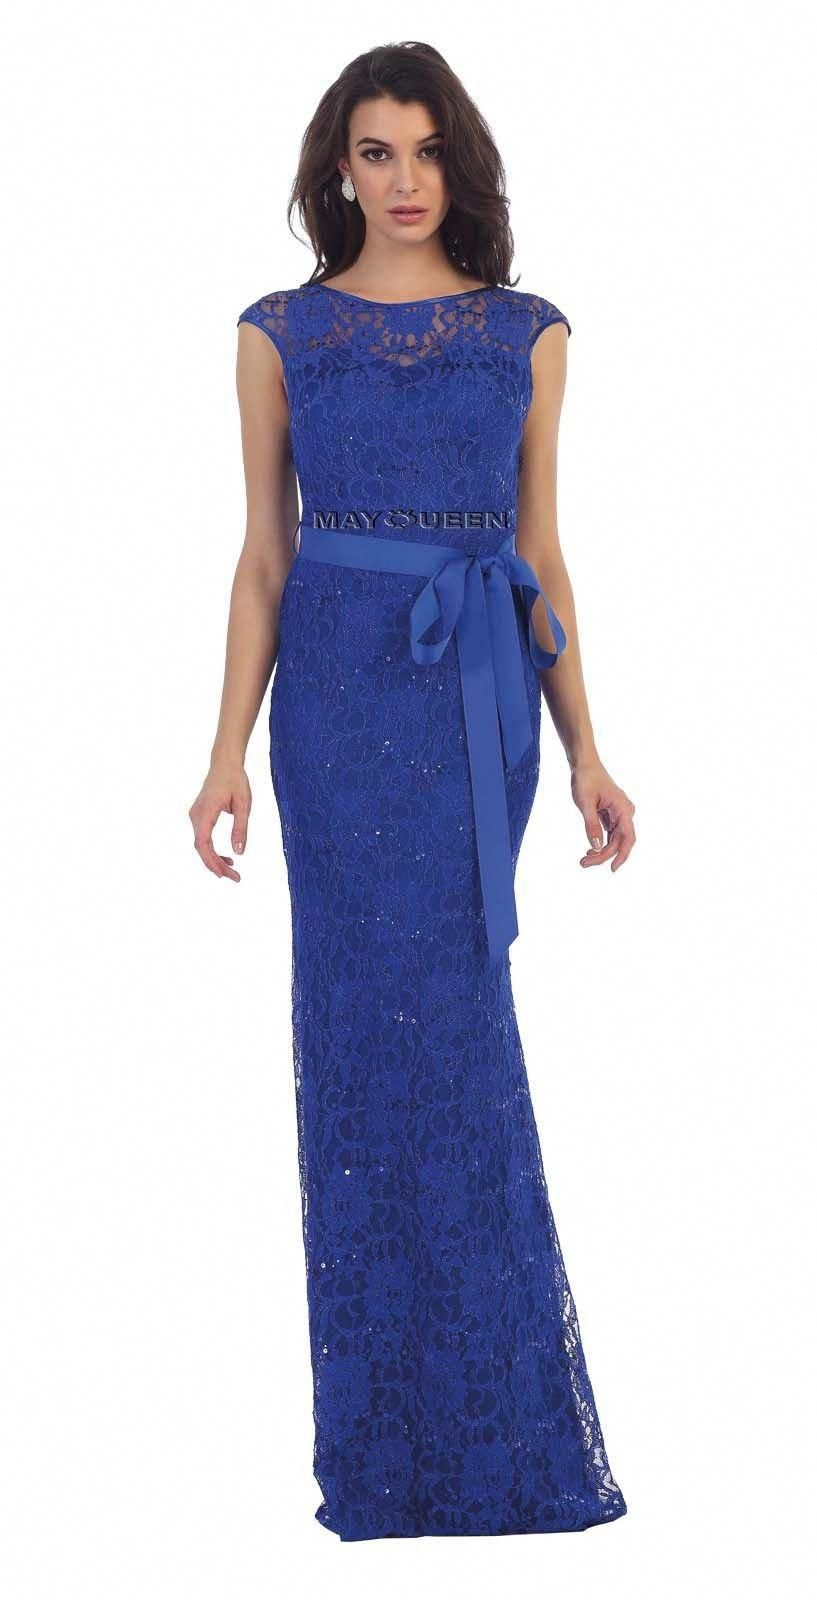 ce6638fec1 This elegant long mother of the bride dress comes with sequins